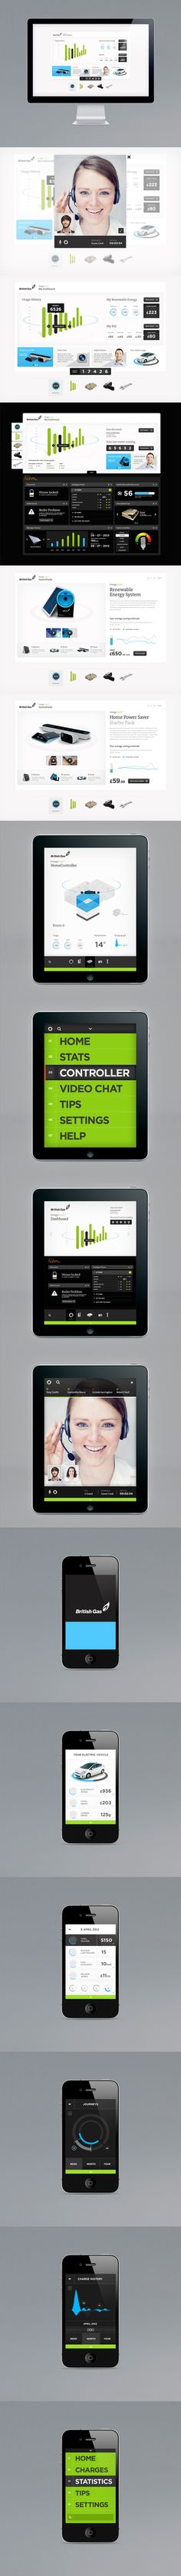 British Gas Dashboard by MmDesign